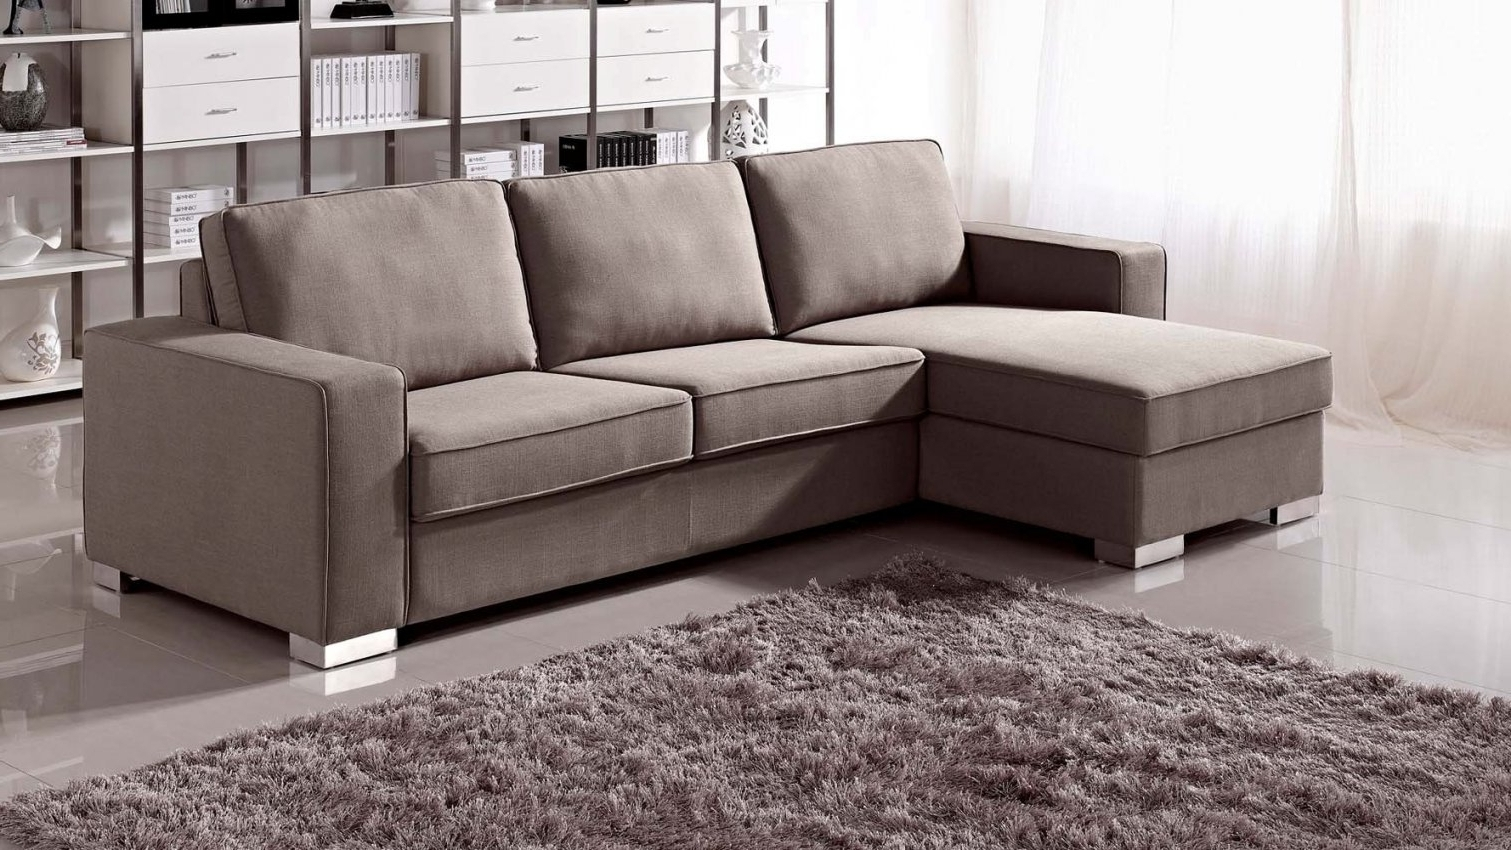 Well Known Sectional Sleeper Sofas With Chaise Pertaining To Sectional Sleeper Sofa With Chaise 29 In Sofa Design Ideas (View 1 of 15)